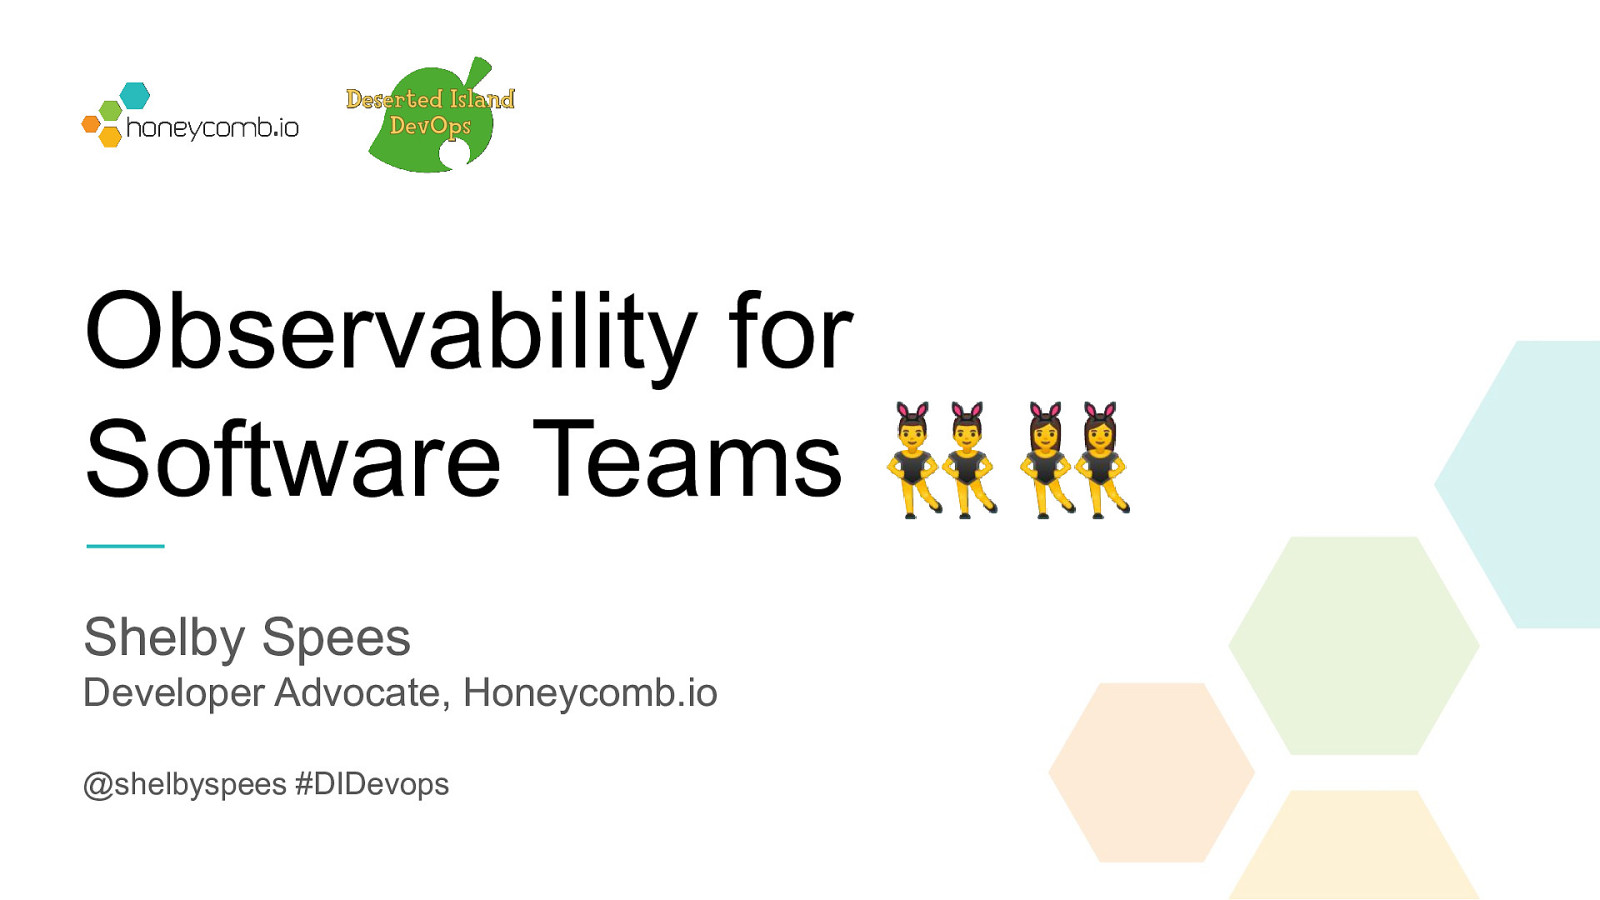 Observability for Software Teams